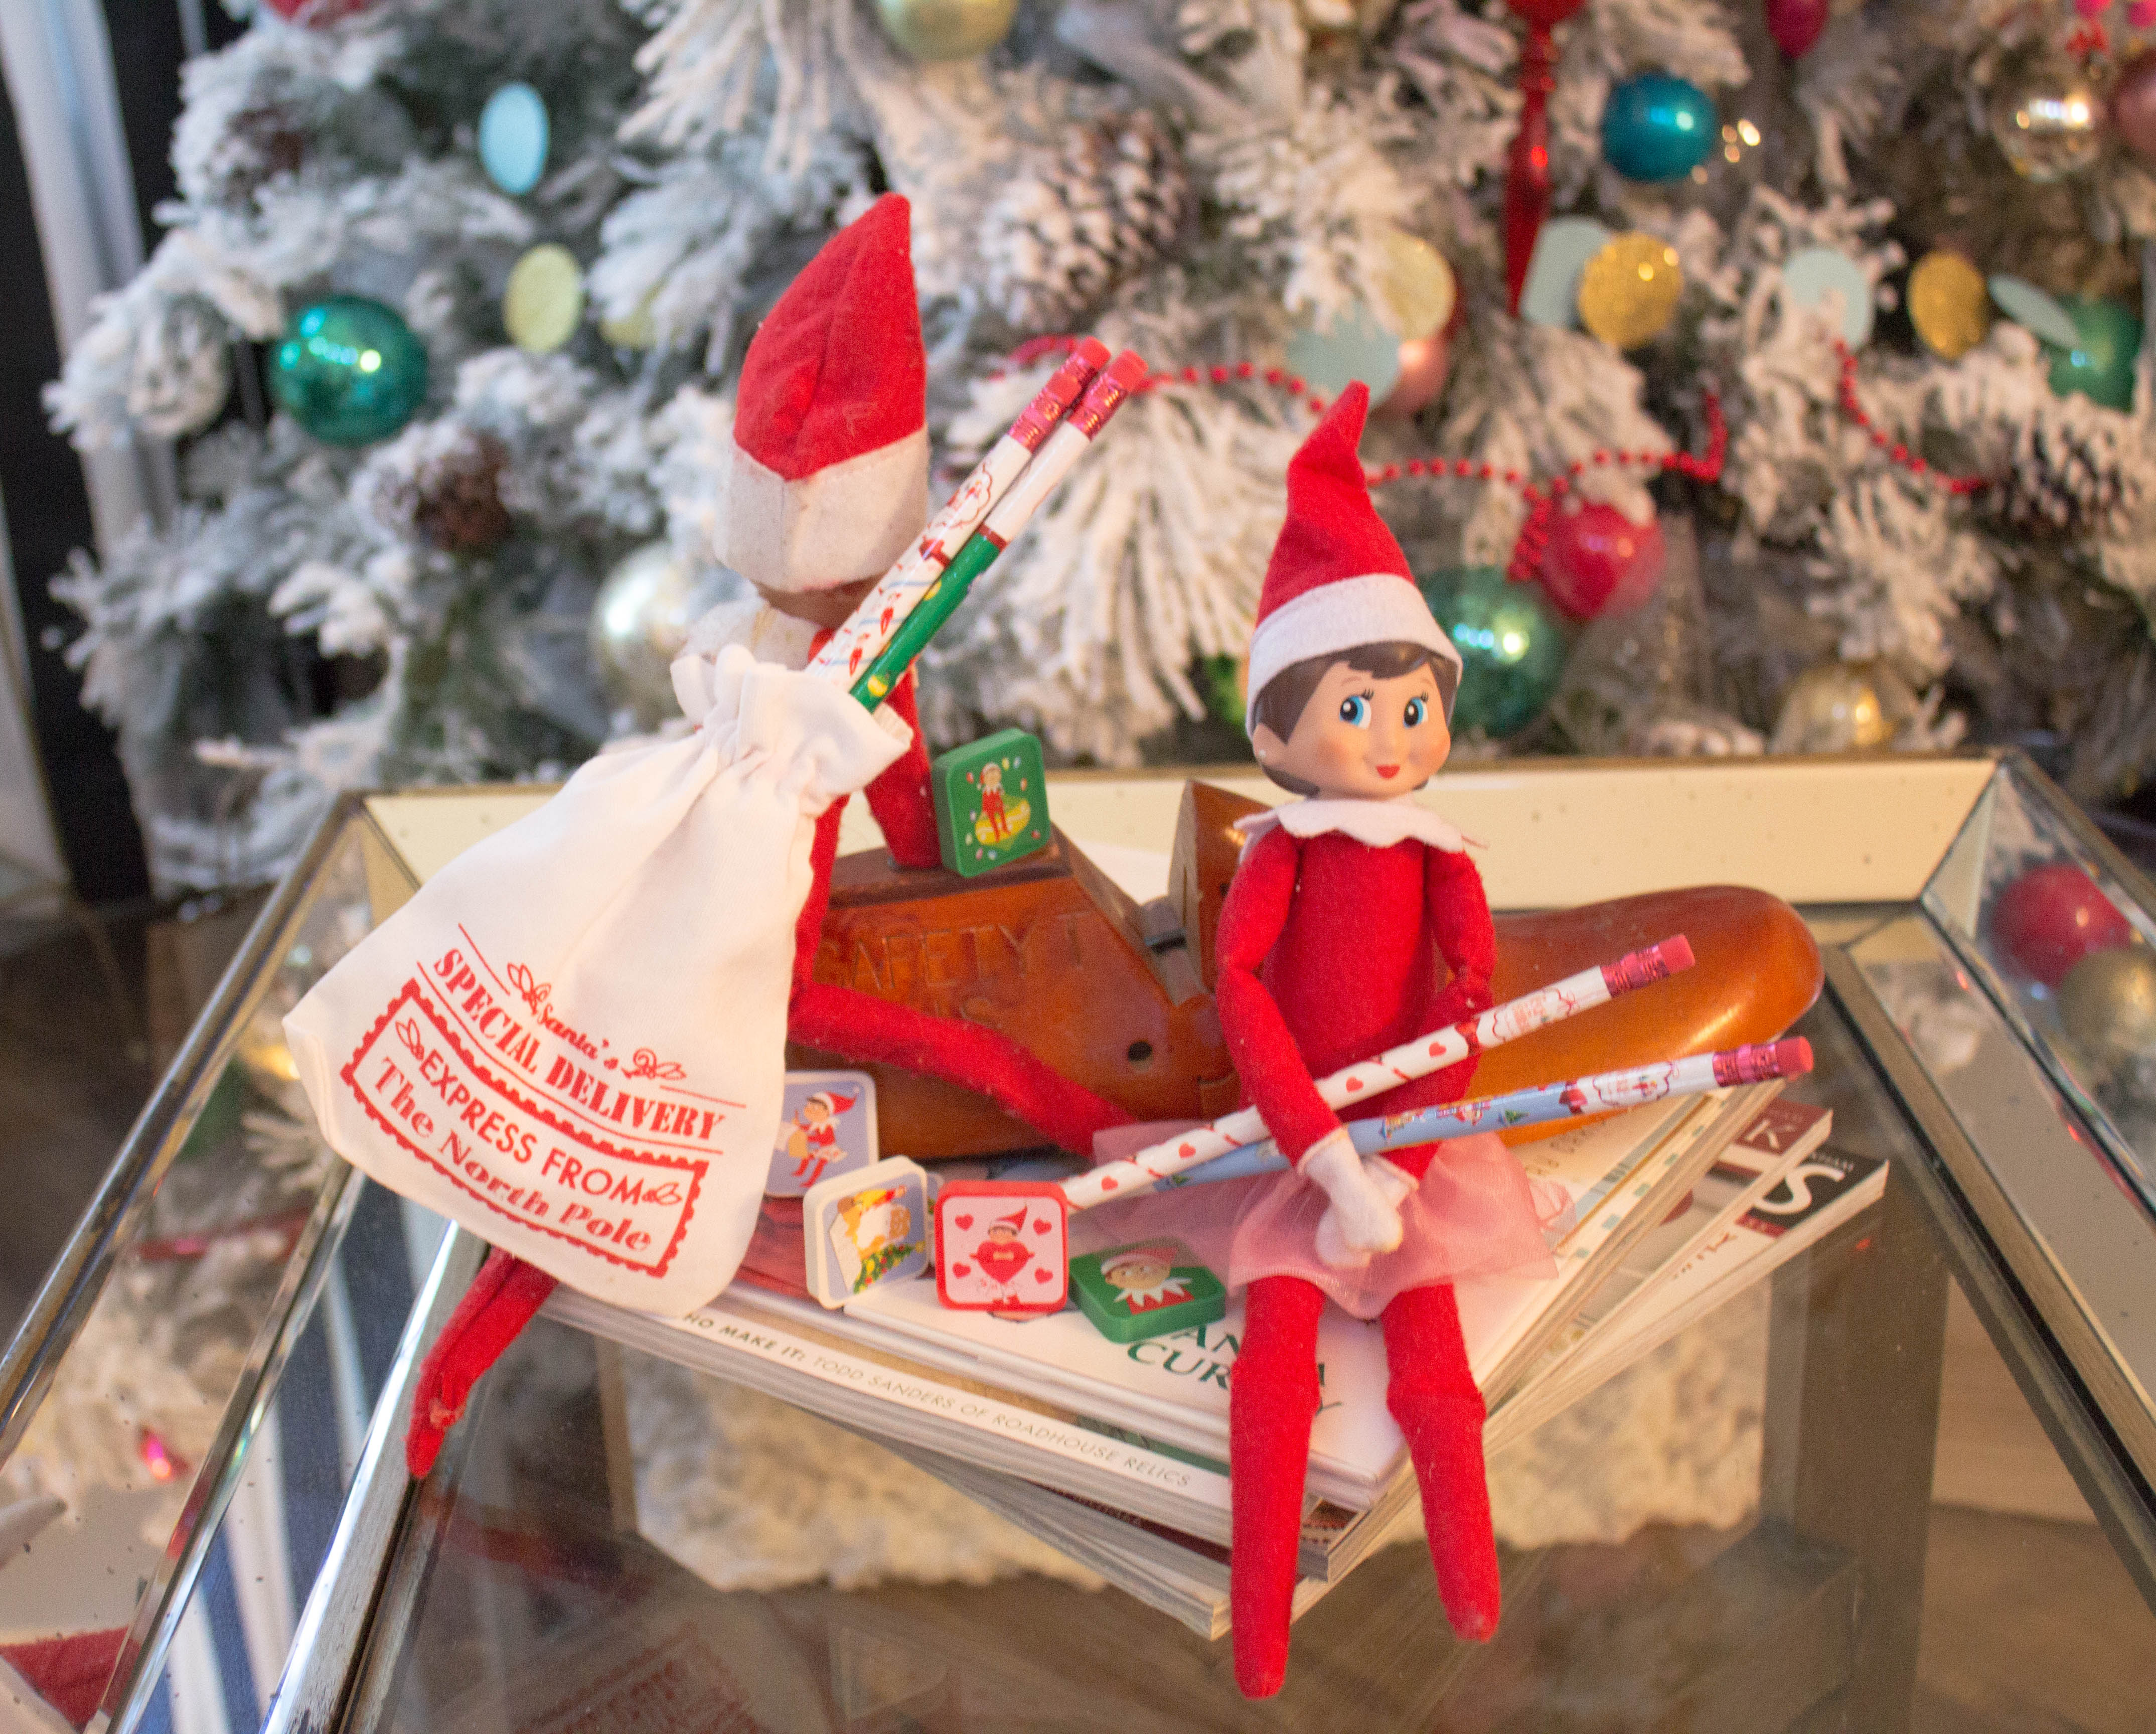 elf-on-the-shelf-ideas-and-elf-on-shelf-products-scenes-christmas-traditions-16